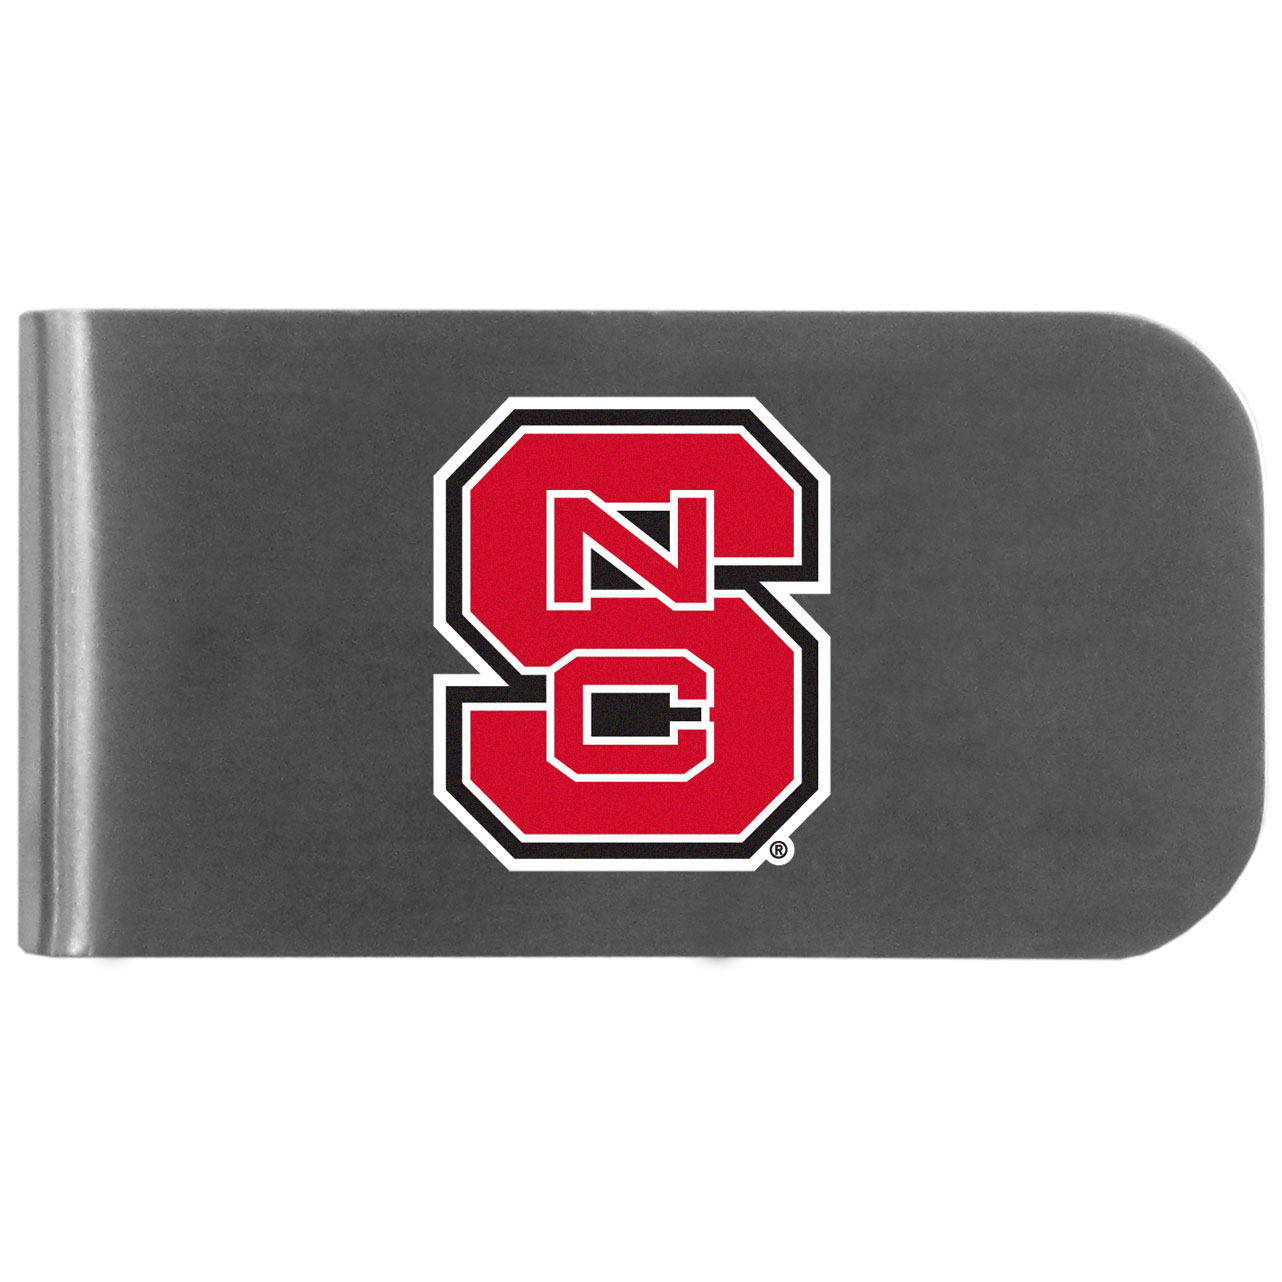 N. Carolina St. Wolfpack Logo Bottle Opener Money Clip - This unique money clip features a classic, brushed-metal finish with a handy bottle opener feature on the back. The clip has the N. Carolina St. Wolfpack logo expertly printed on the front of the clip.